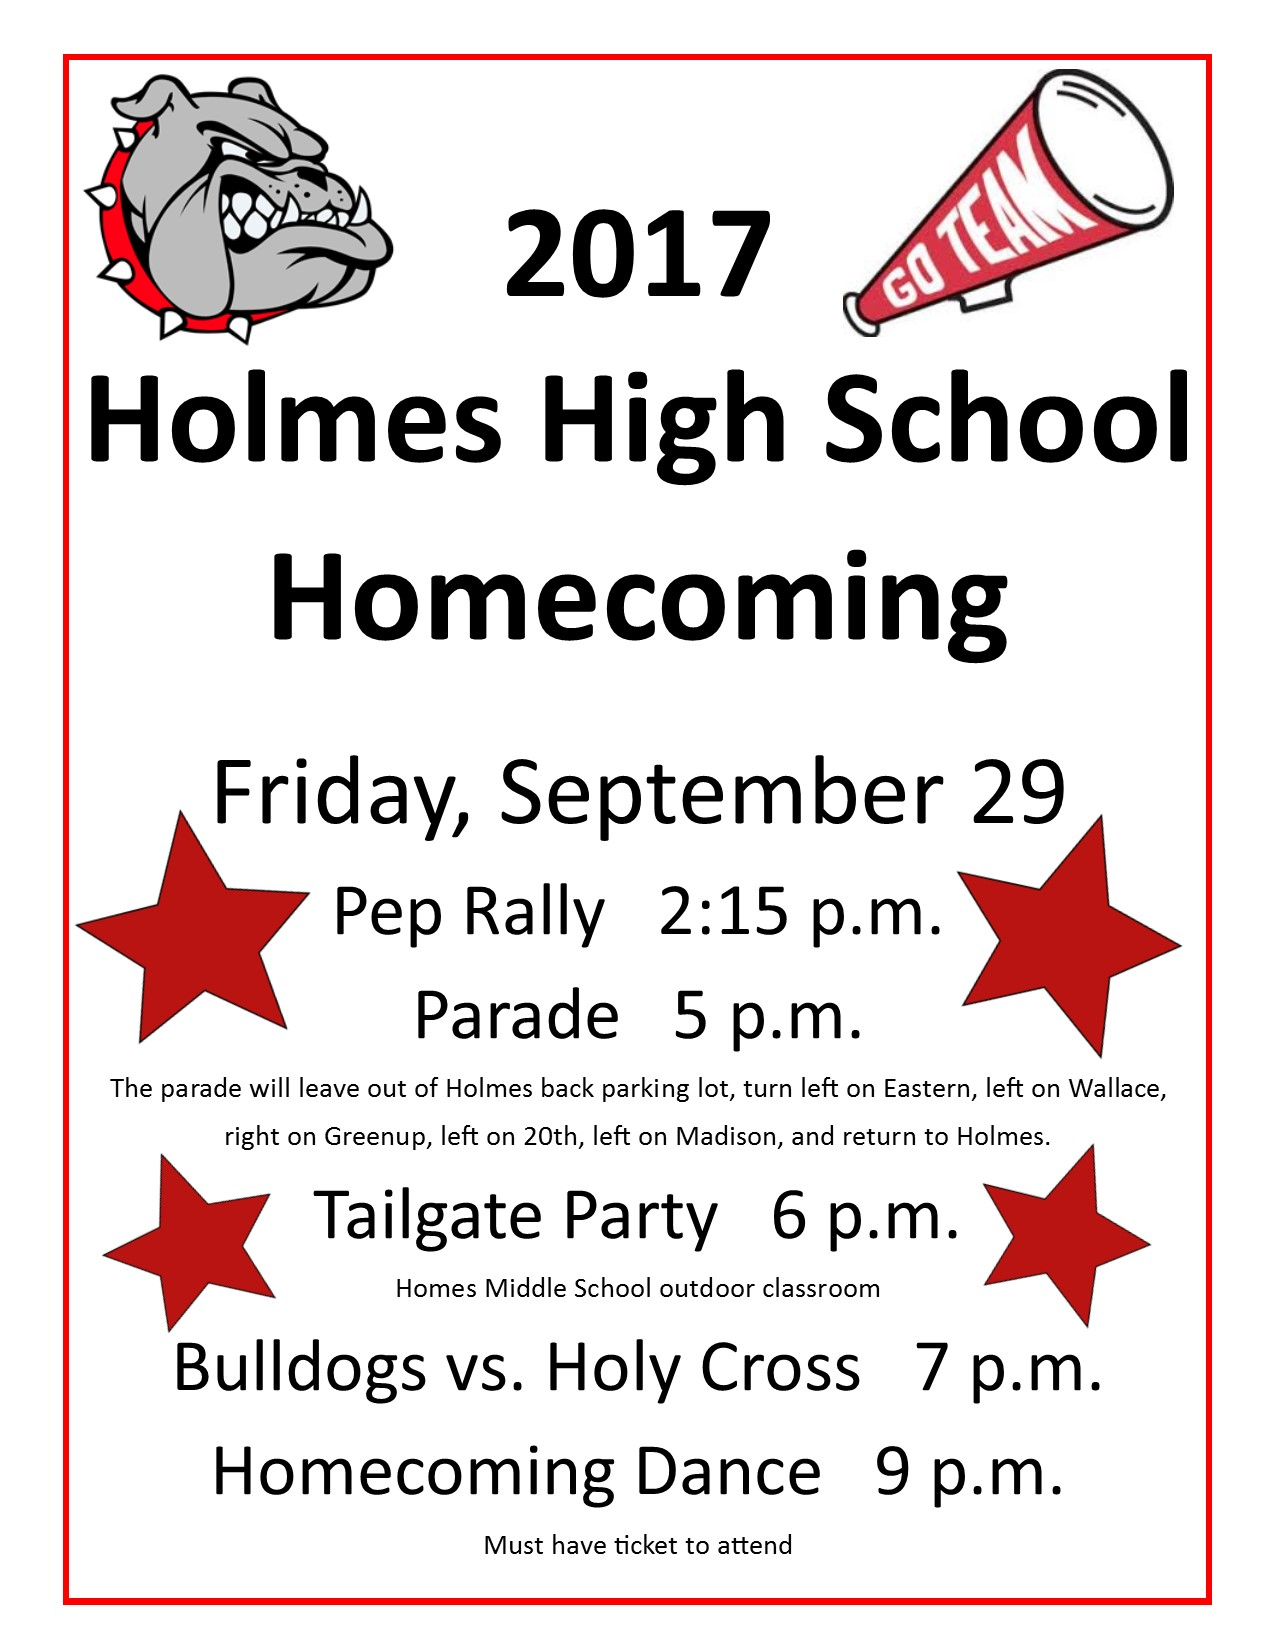 Homecoming 2017